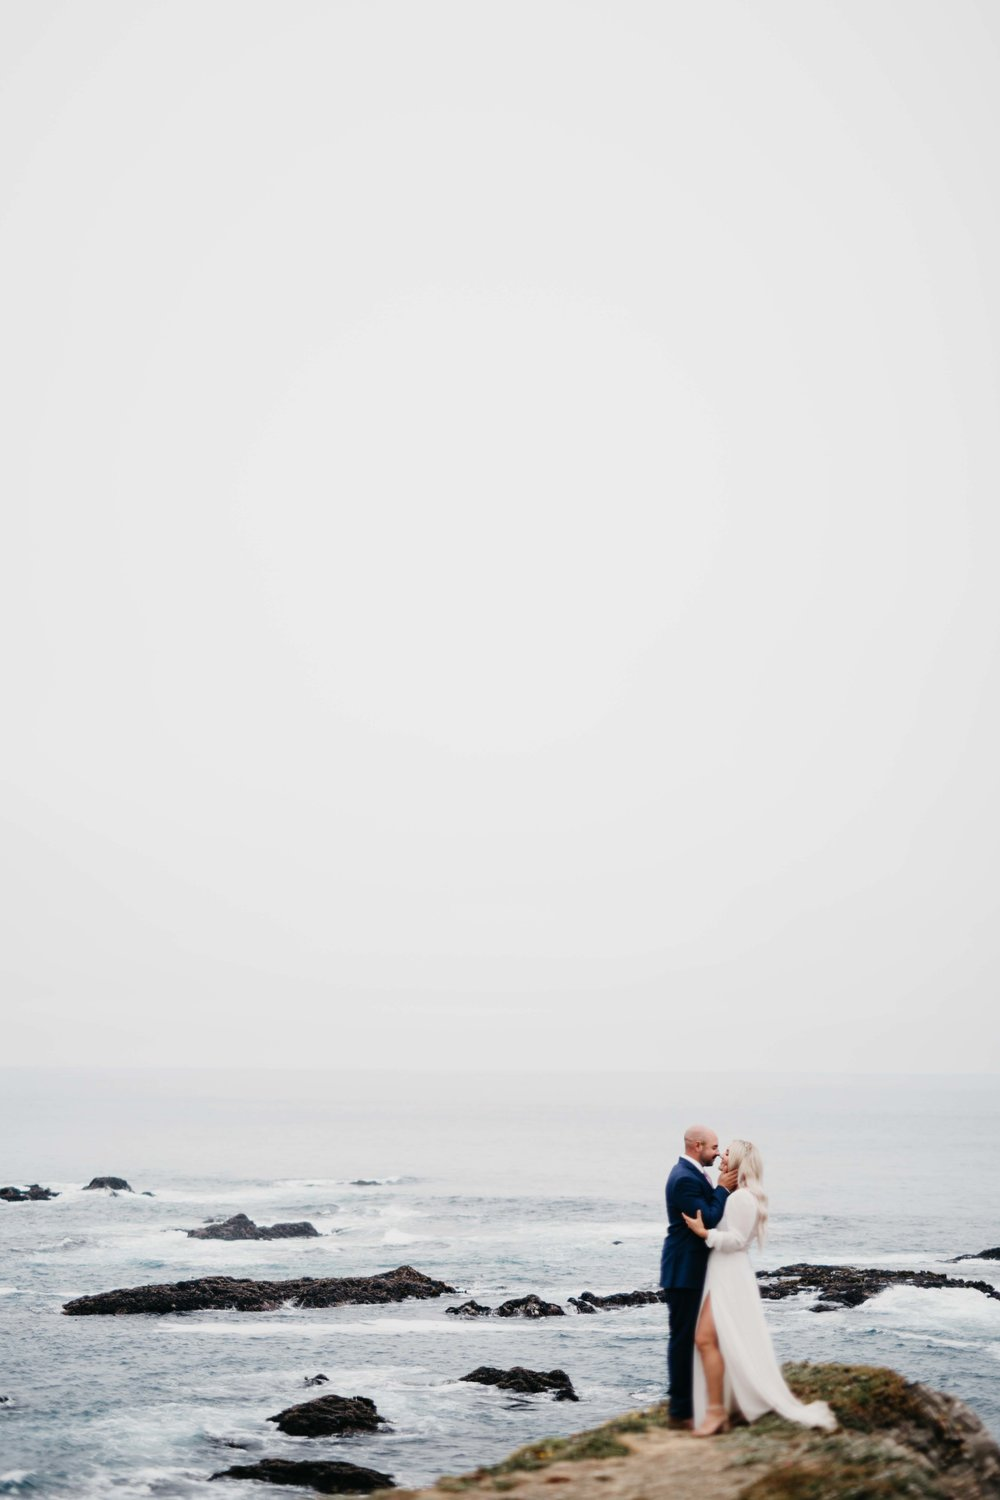 Utah-Wedding-Photographer-75.jpg